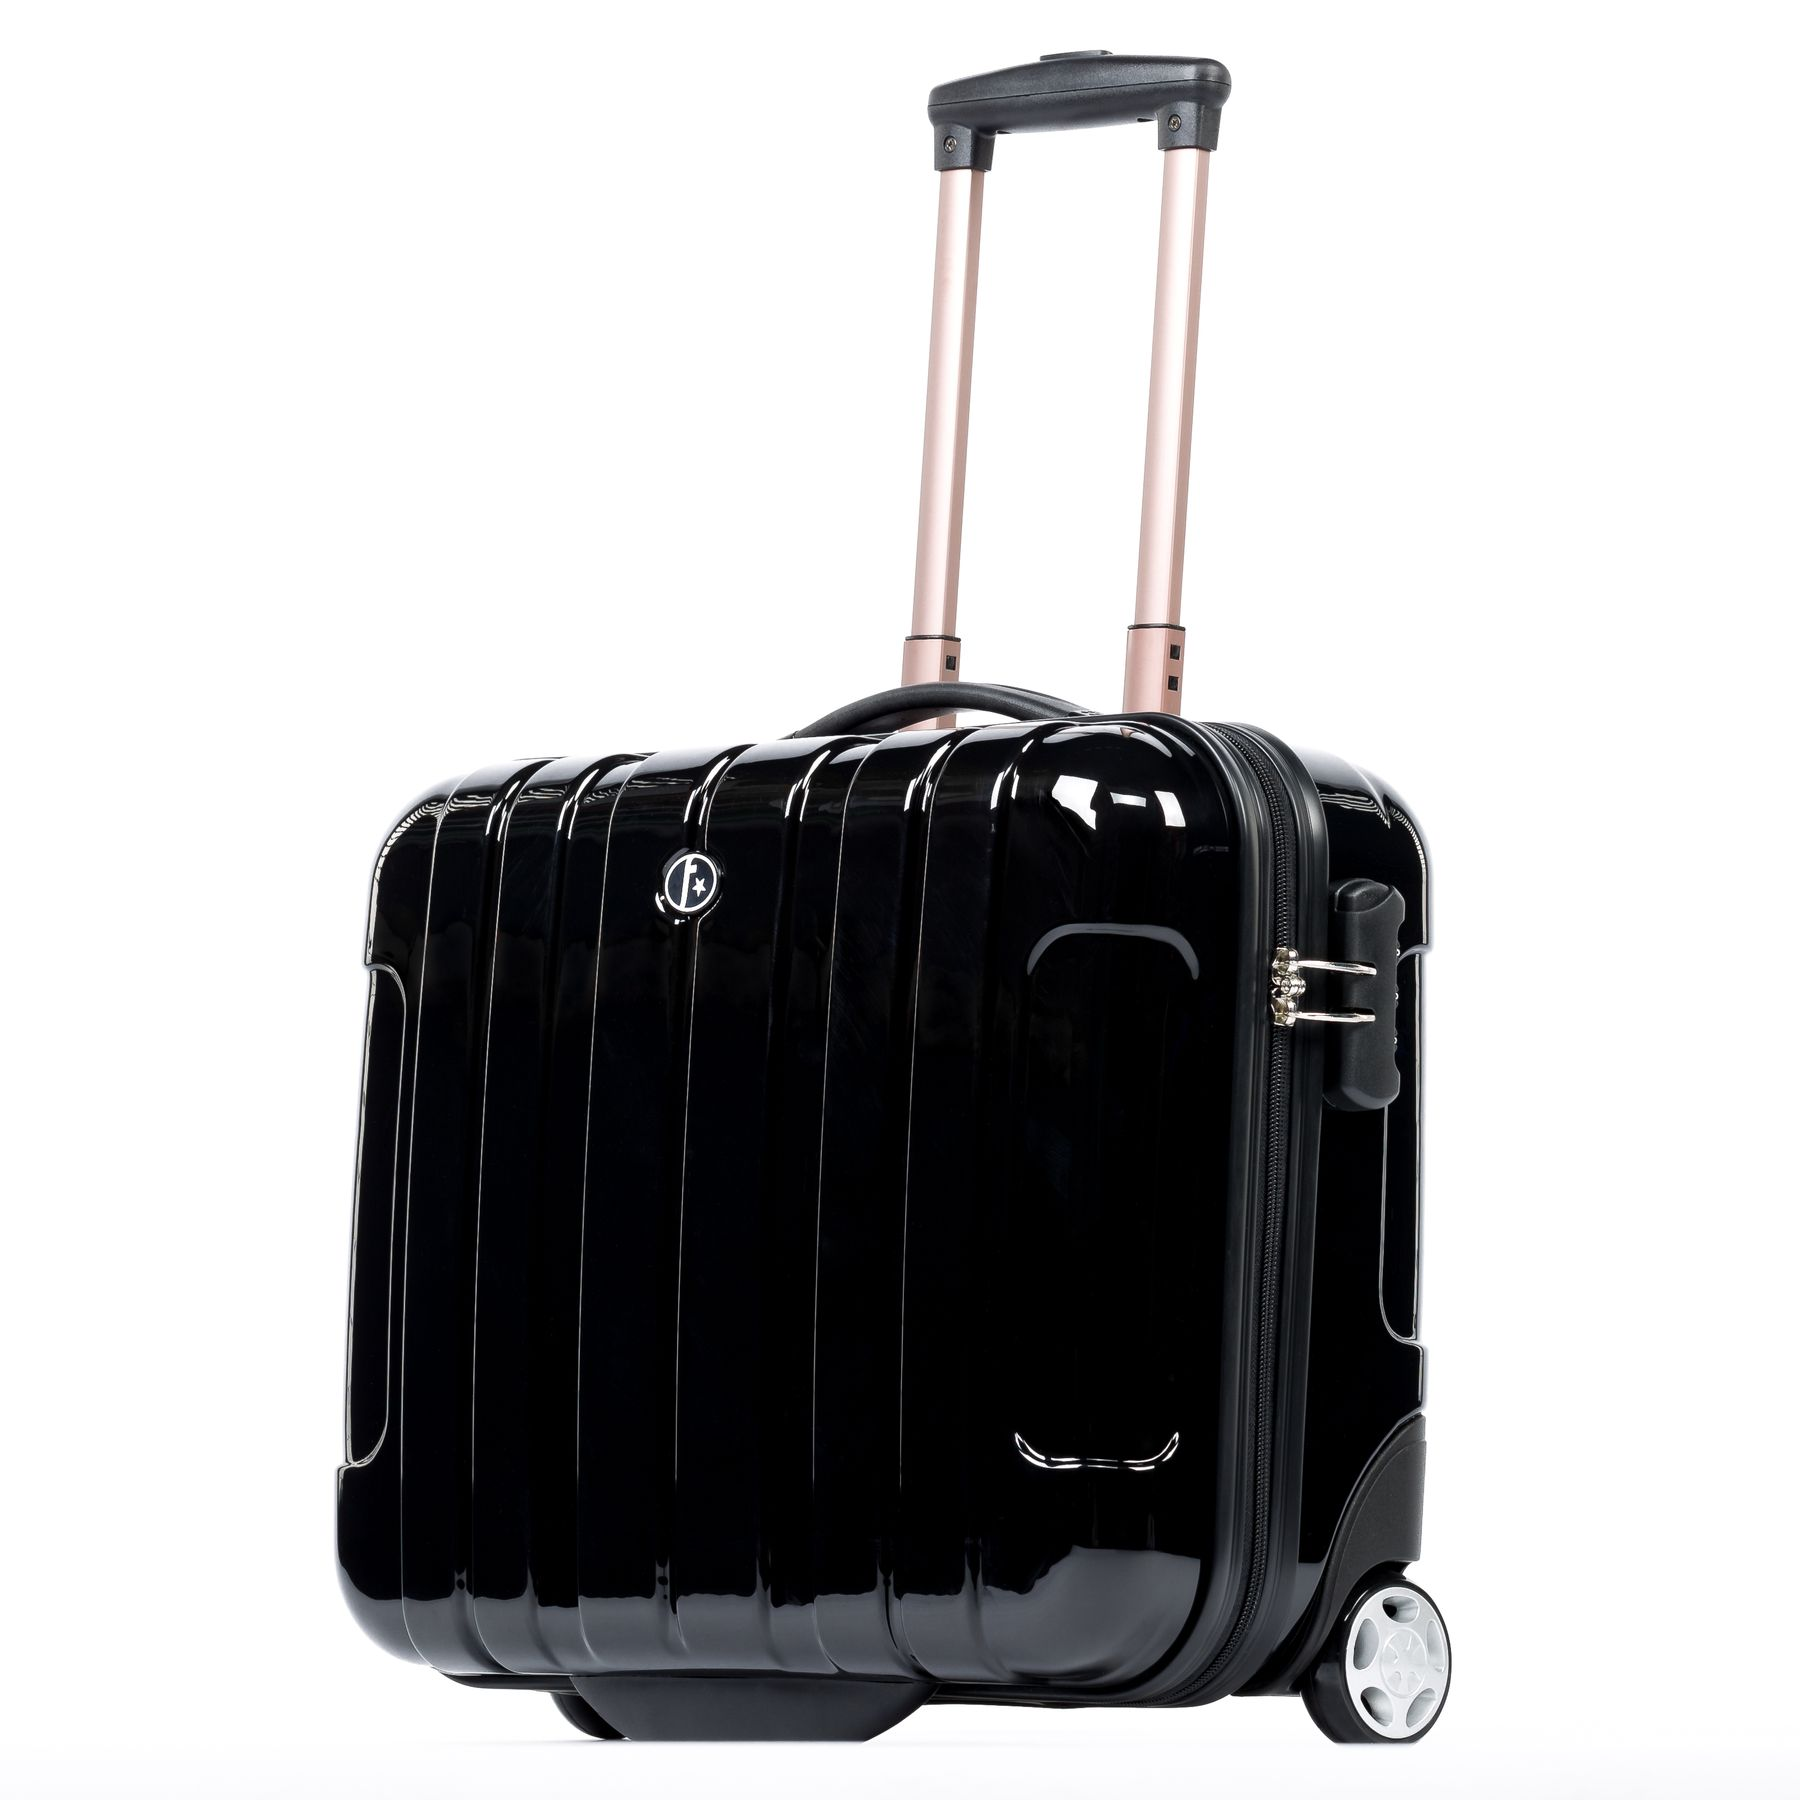 FERGÉ pilot s suitcase trolley Polycarbonate TESSA black-shiny business case  laptop compartment carry-on hard-shell 2 wheels Business Carry-on Luggage d5661cc3b3